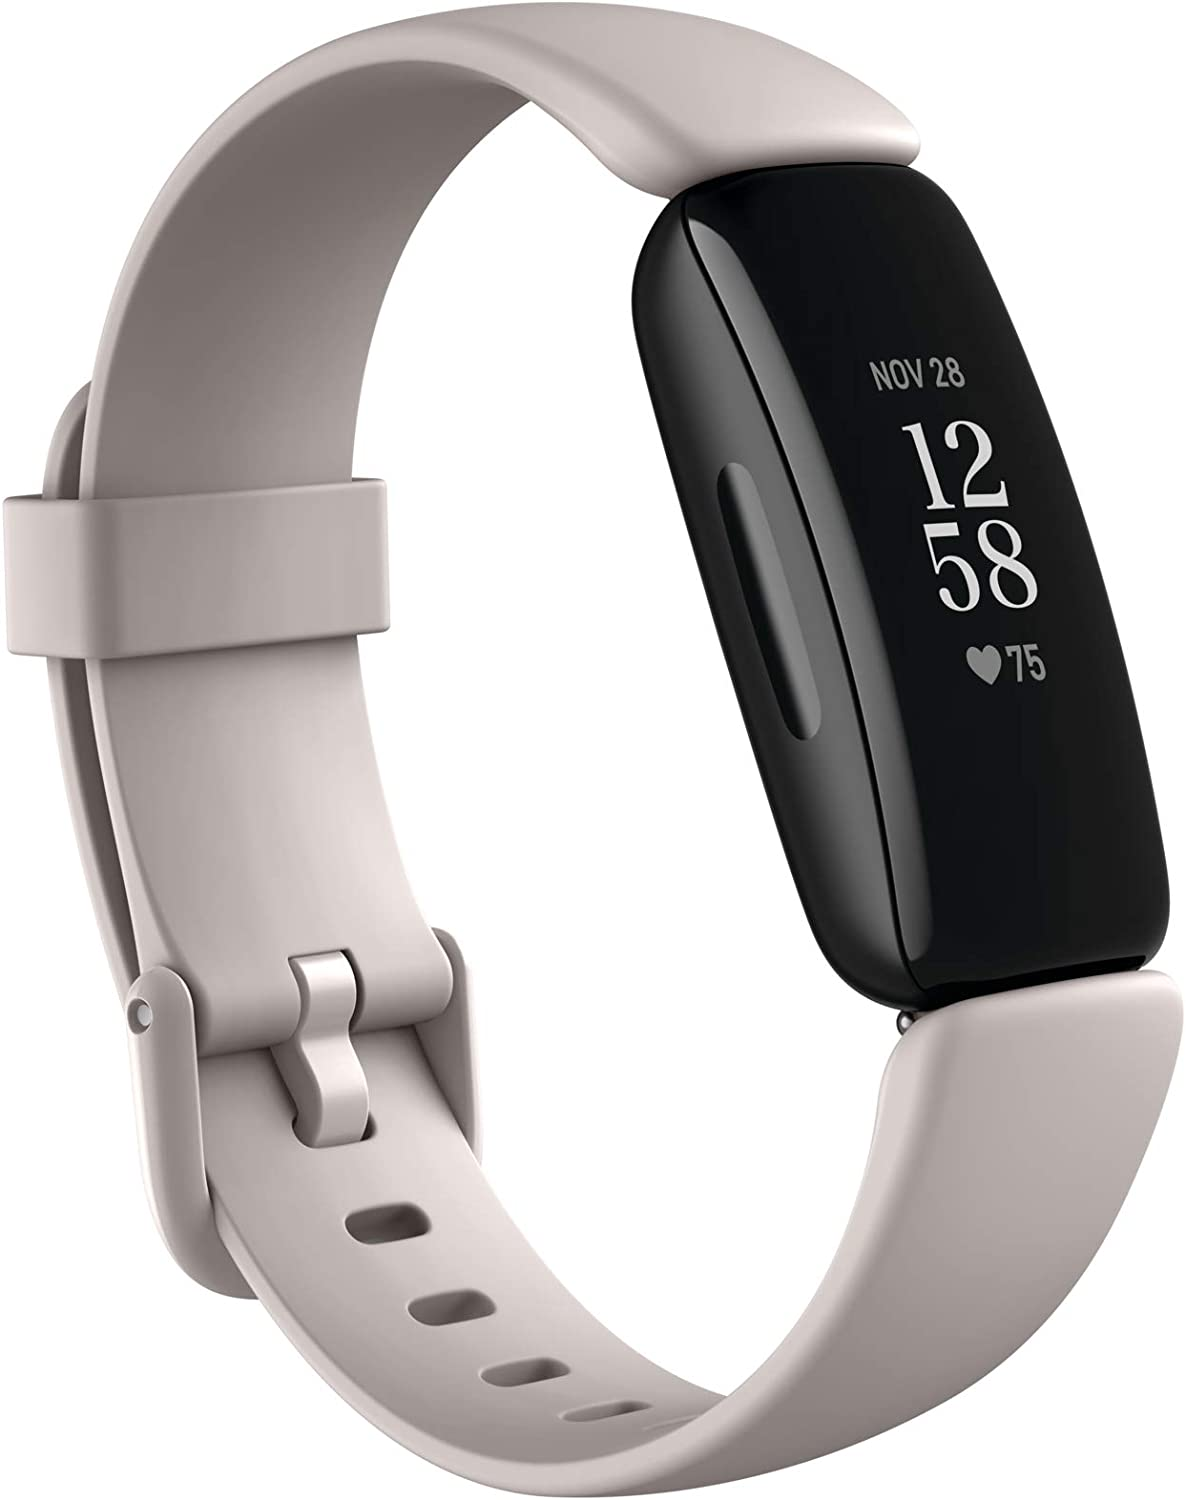 Fitbit Inspire 2 Health & Fitness Tracker with a Free 1-Year Fitbit Premium Trial, 24/7 Heart Rate, Black/White, One Size (S & L Bands Included)